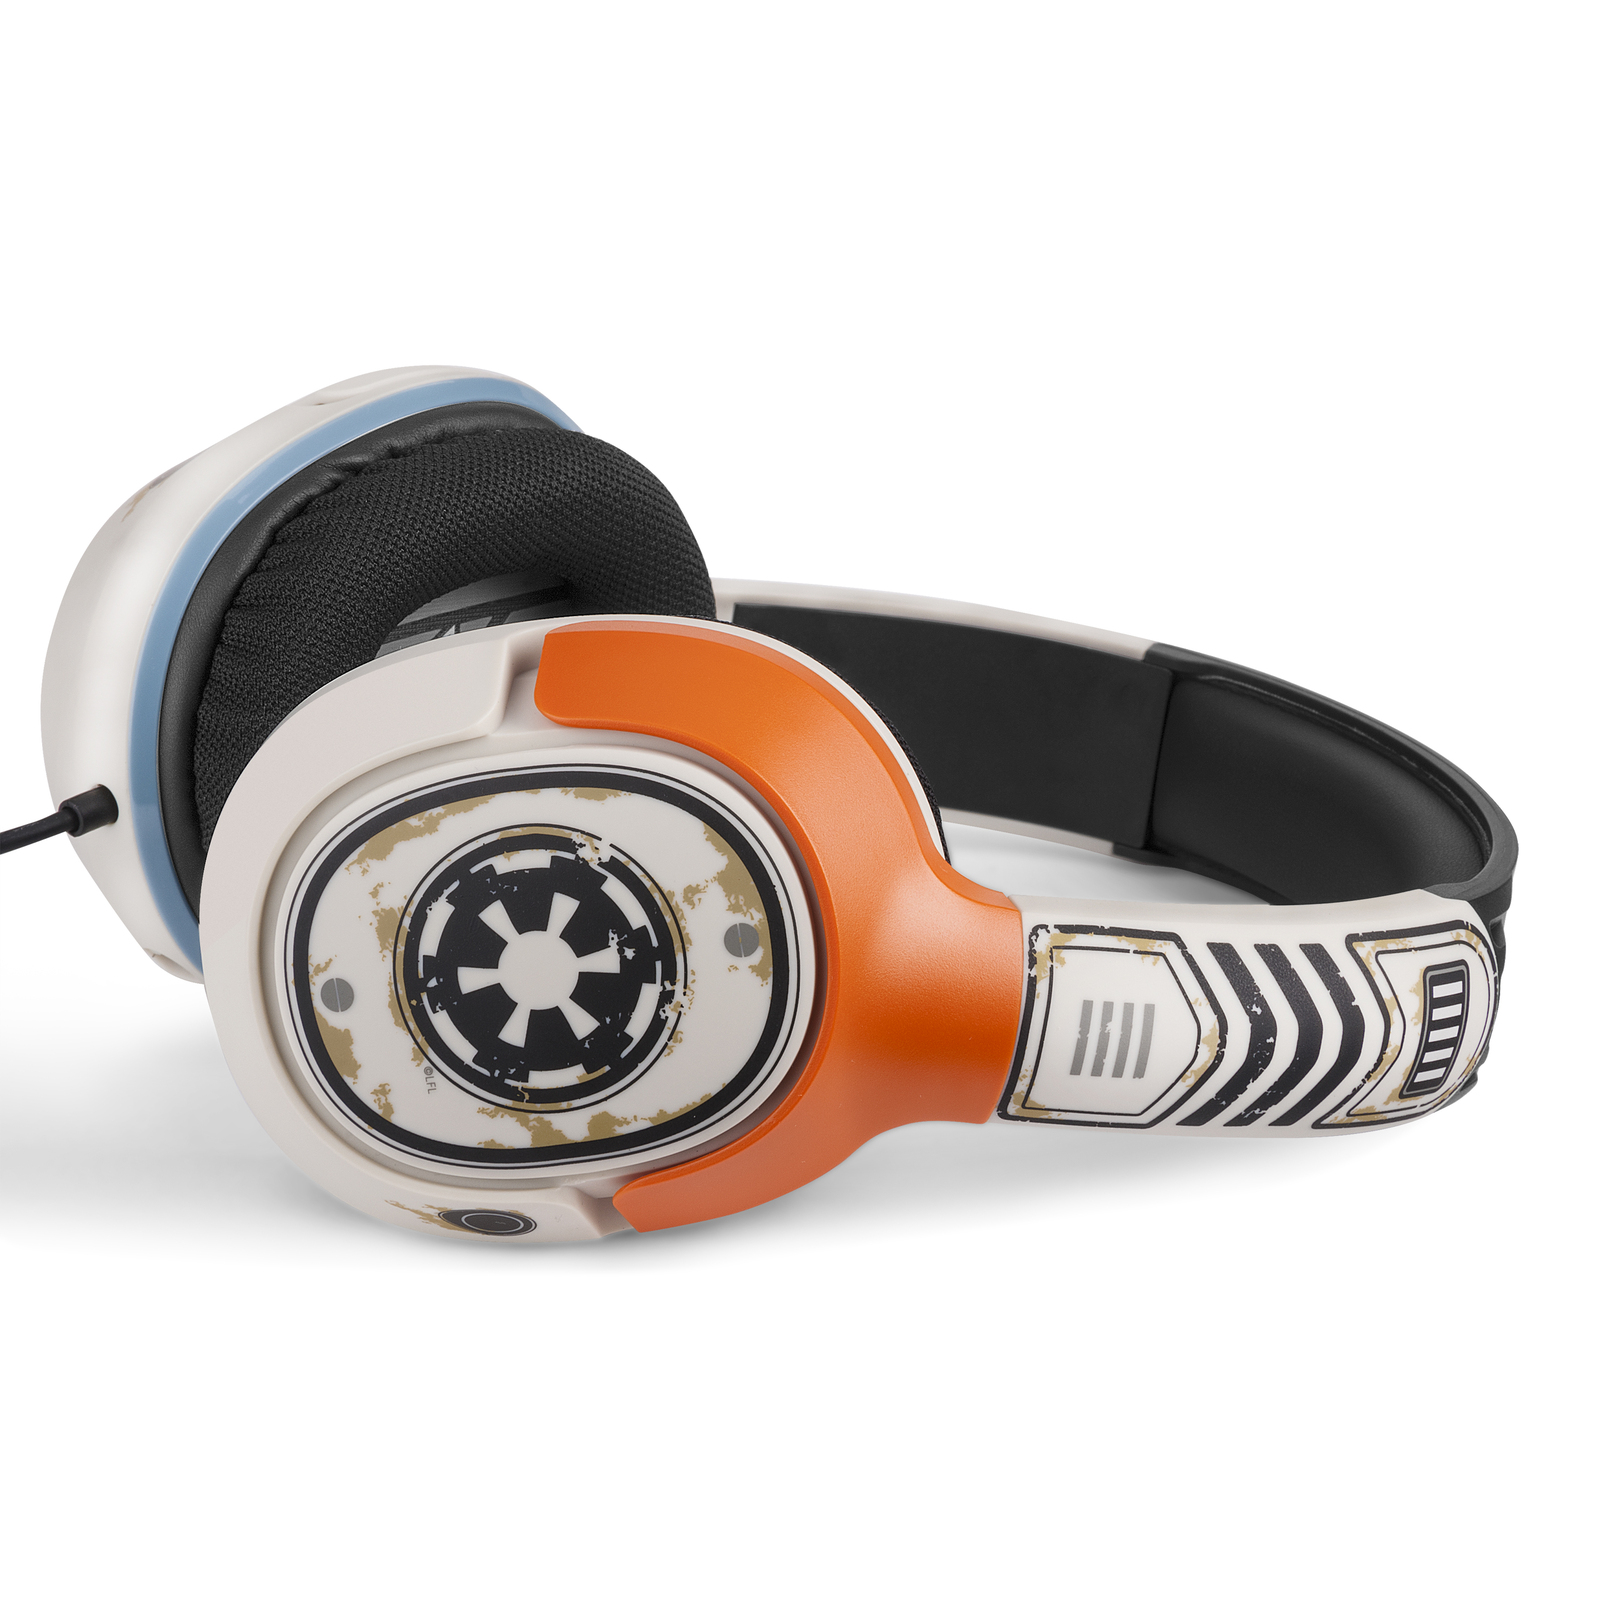 Turtle Beach Star Wars Battlefront Sandtrooper Gaming Headset (PS4, Xbox One & PC) for PS4 image